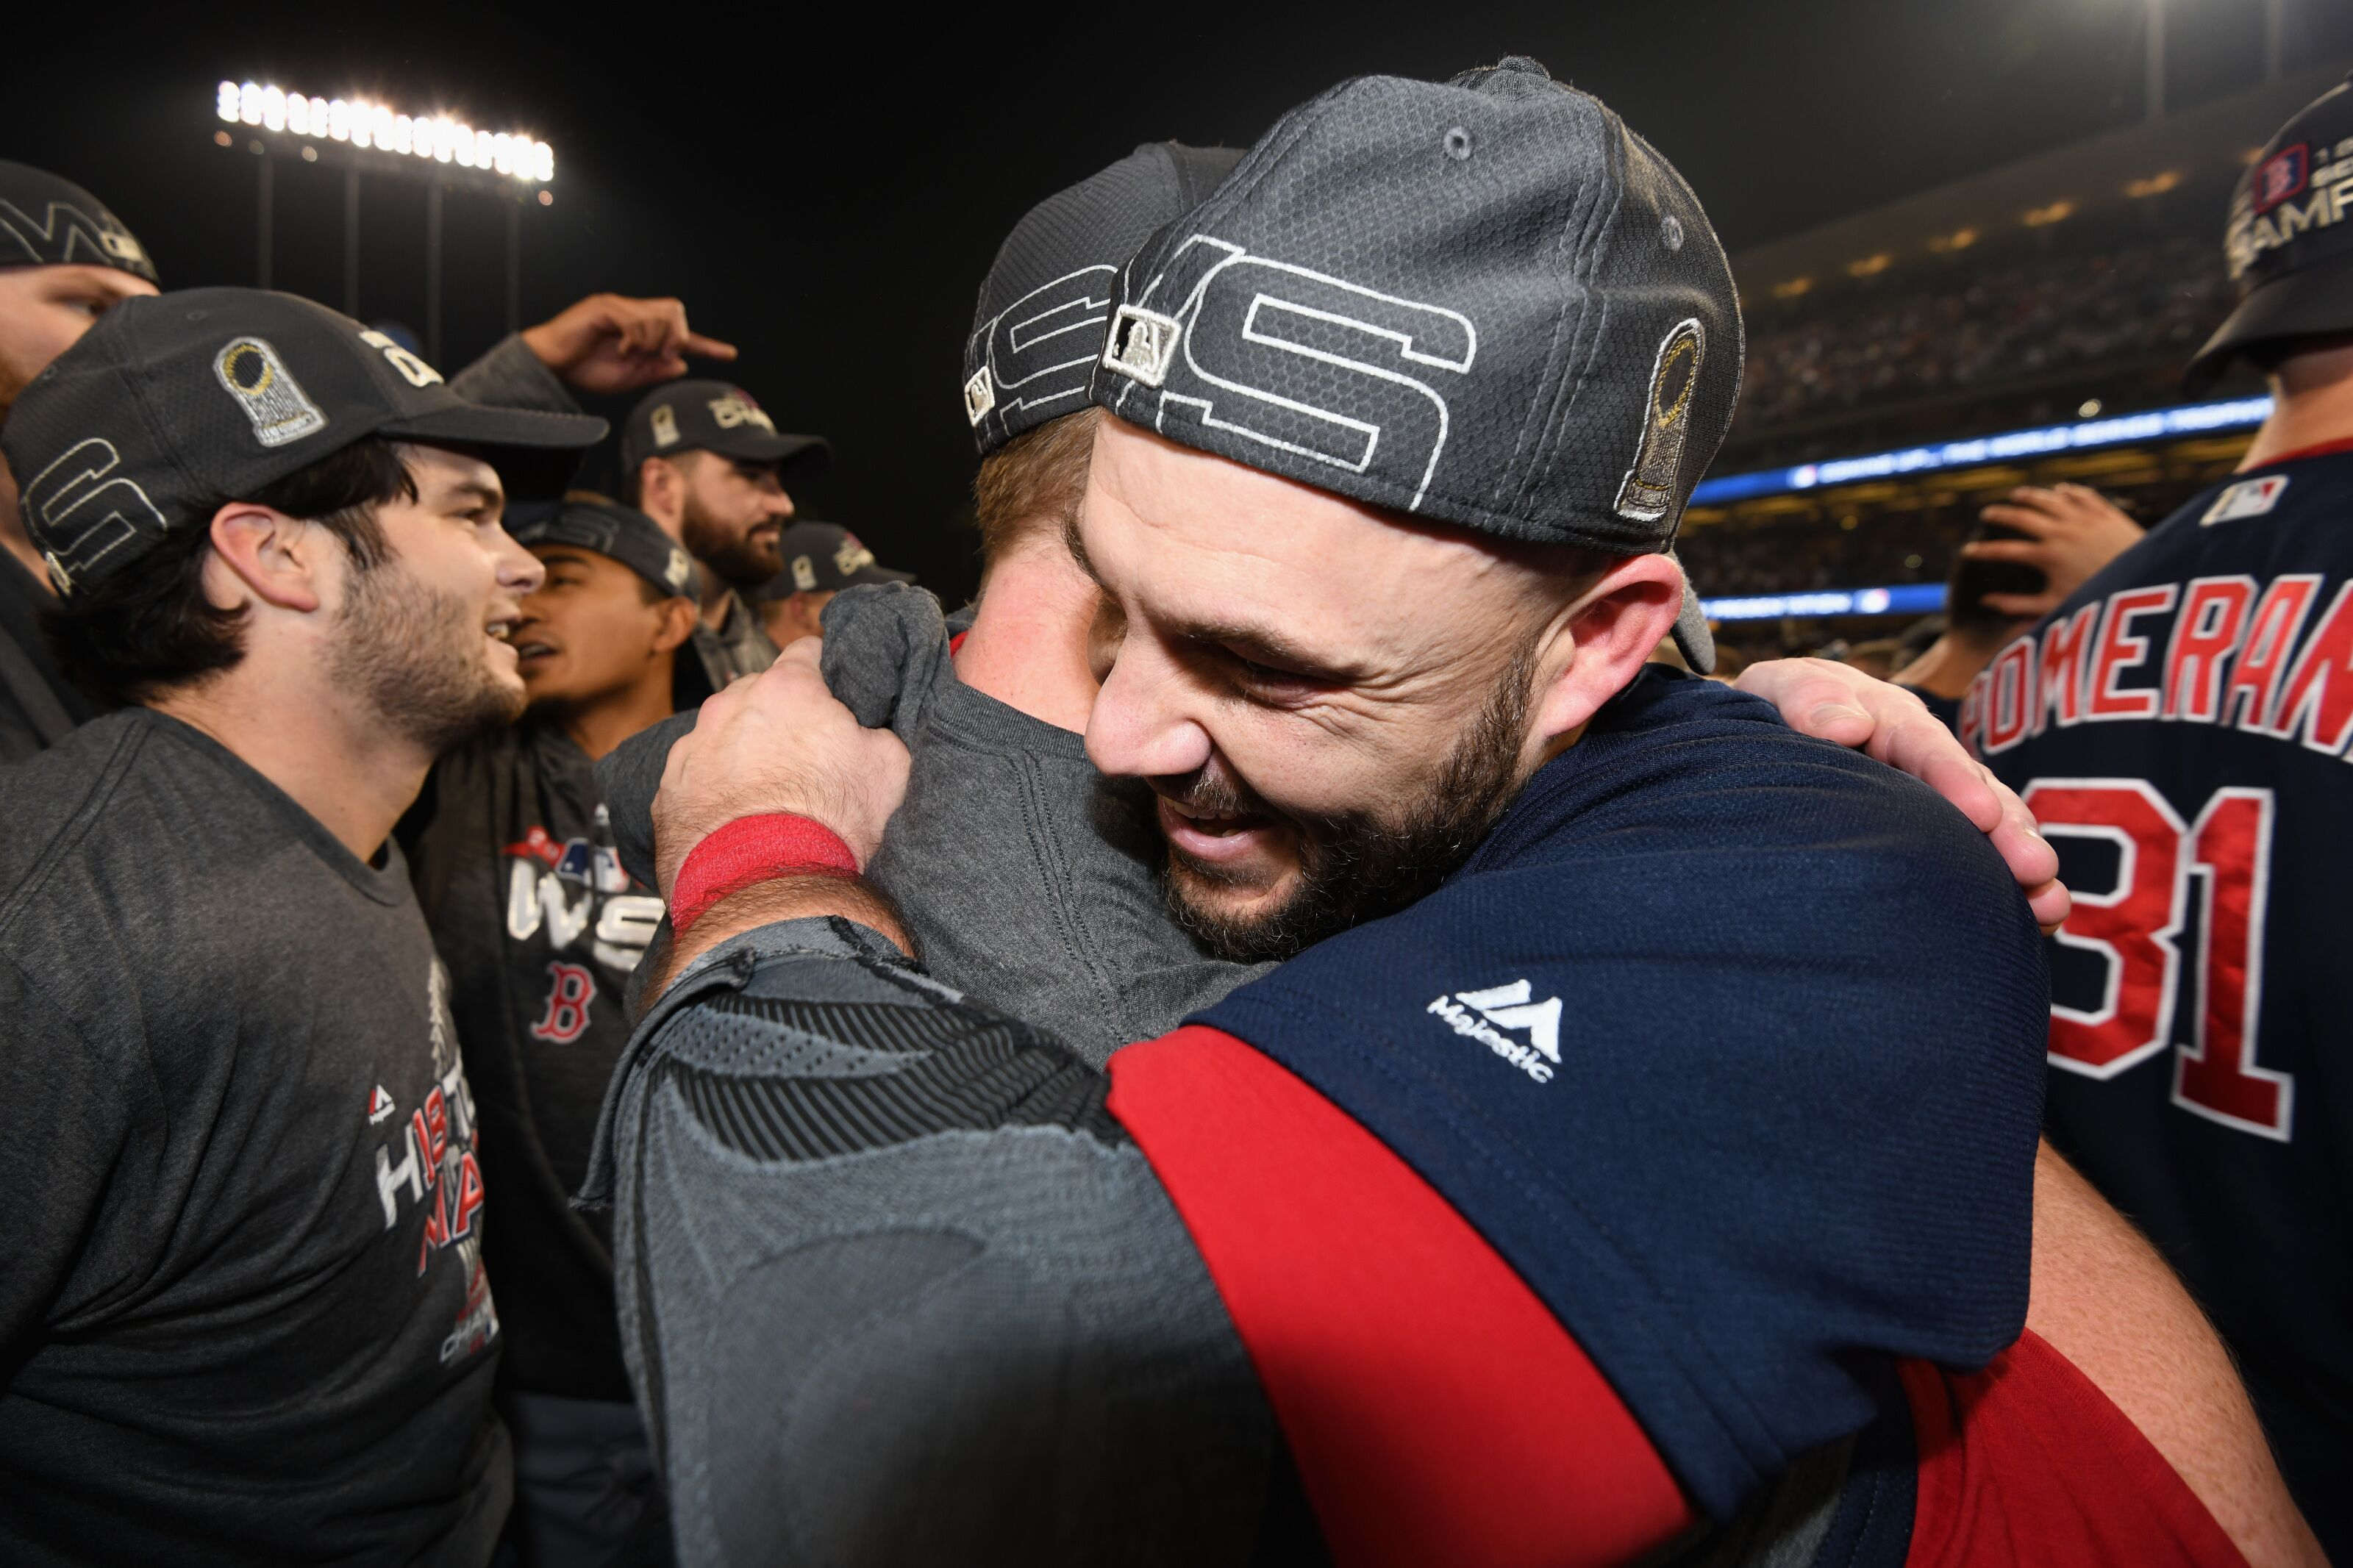 682776c6335df Boston strongest  Red Sox win the World Series with 5-1 Game 5 victory